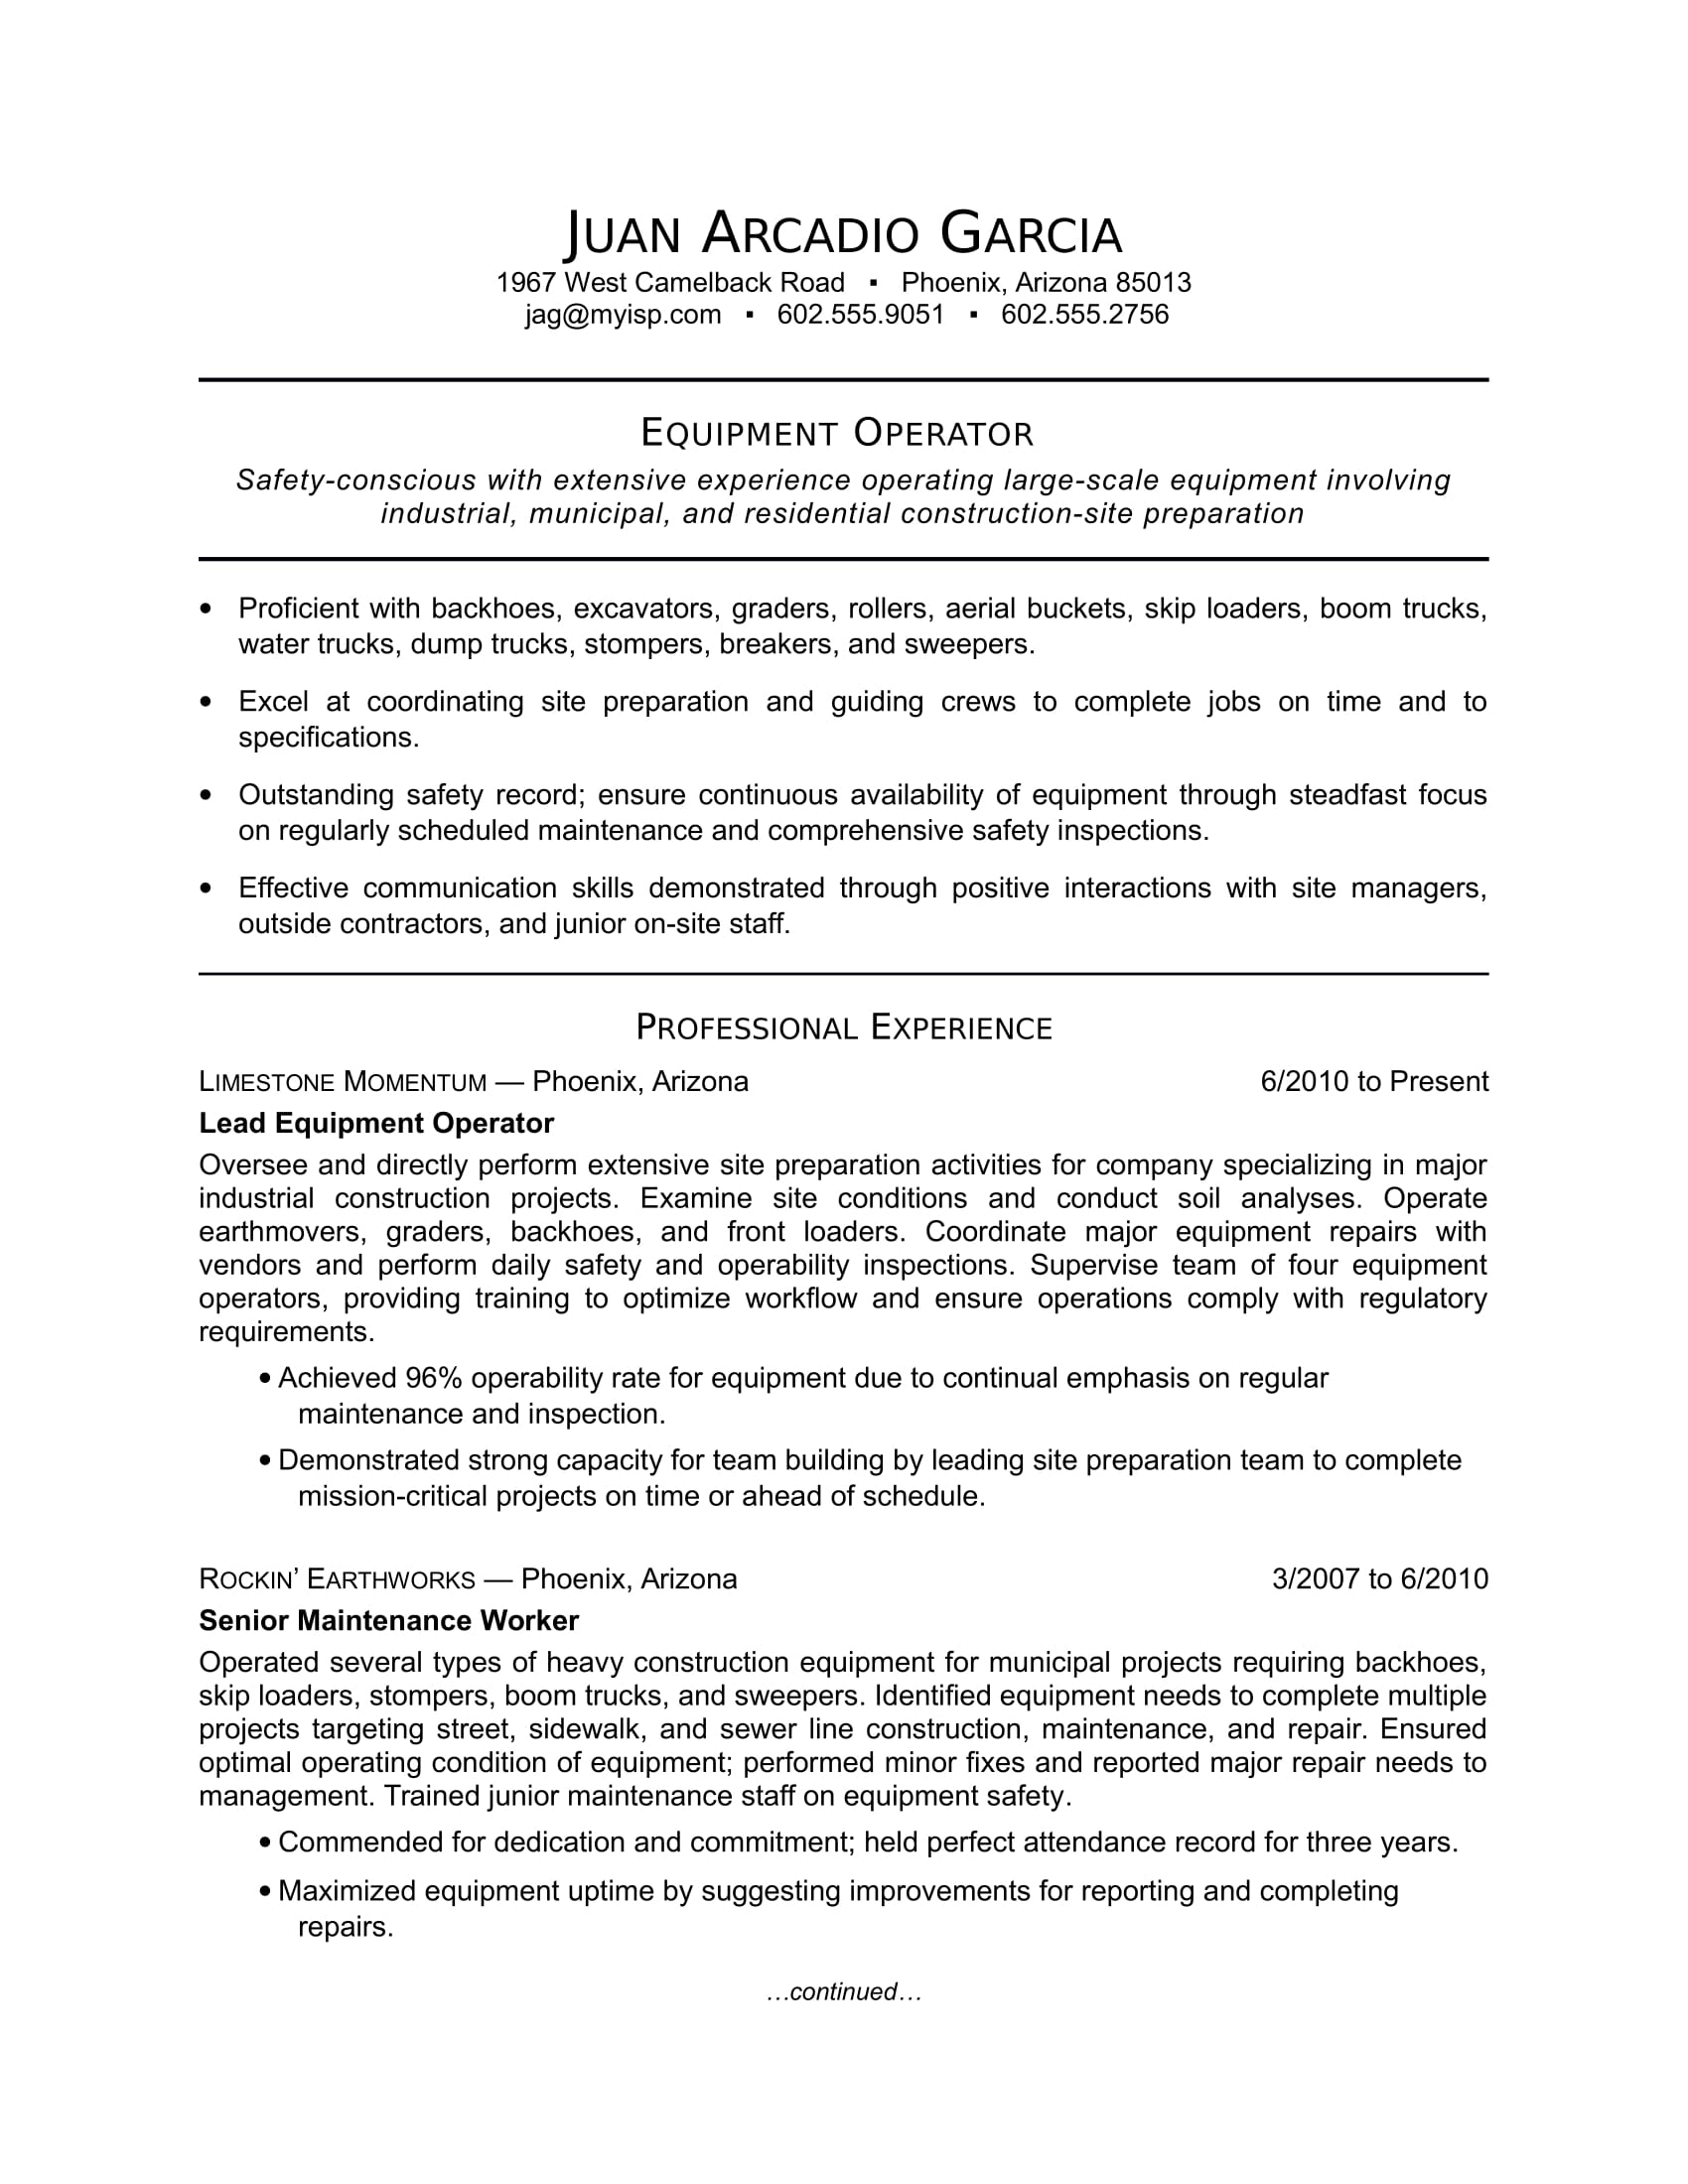 Equipment Operator Resume Sample Monster